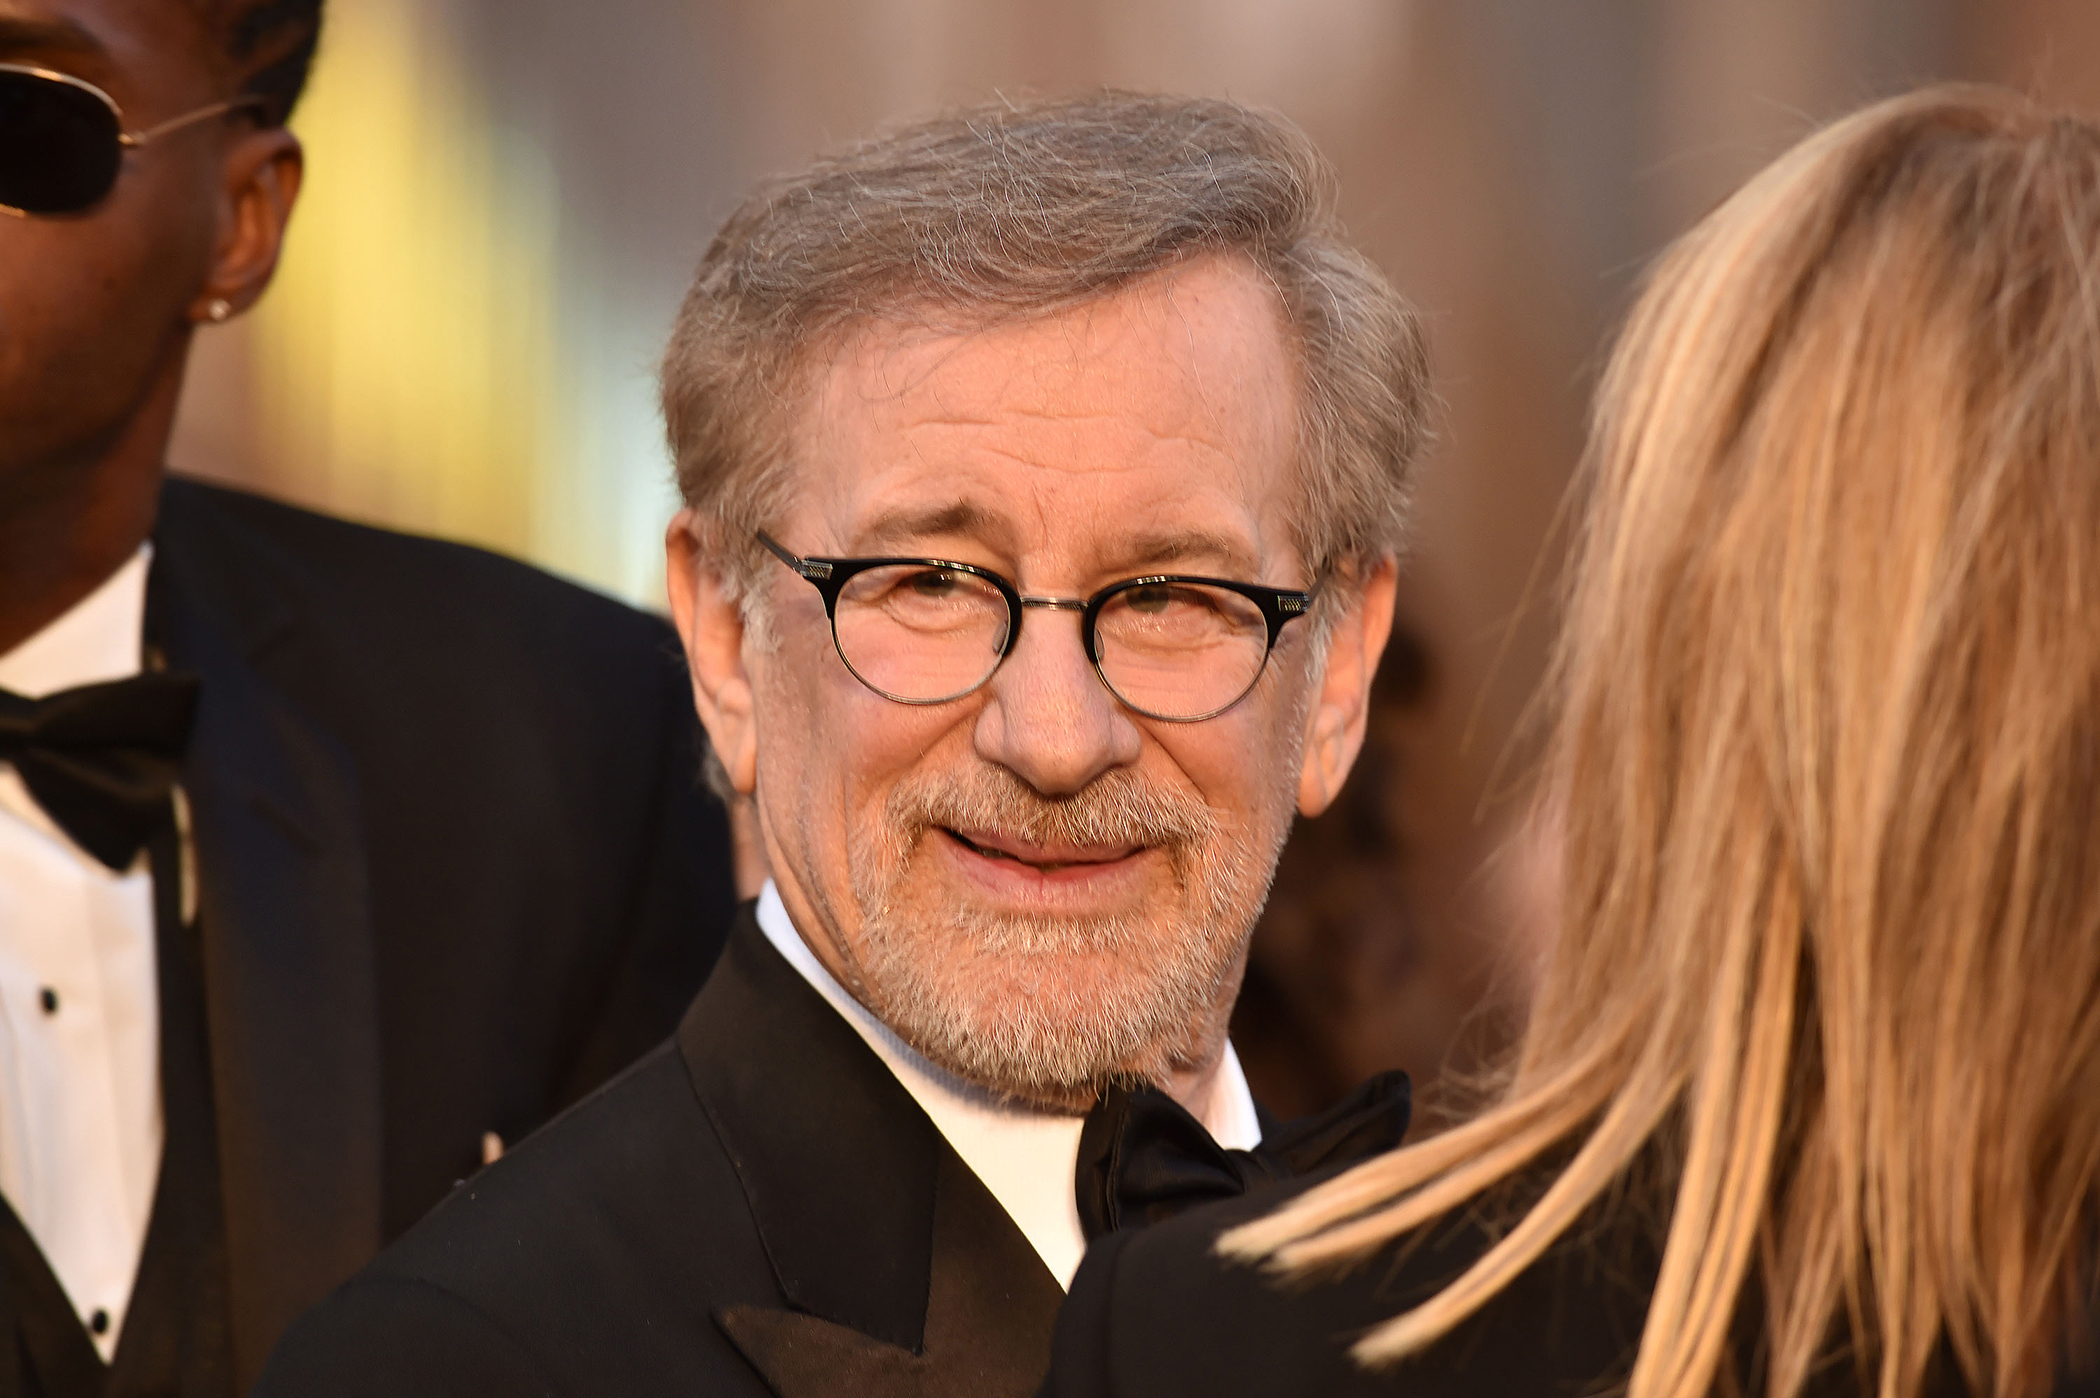 Director Steven Spielberg attends the 88th Annual Academy Awards at Hollywood & Highland Center on February 28, 2016 in Hollywood, California.